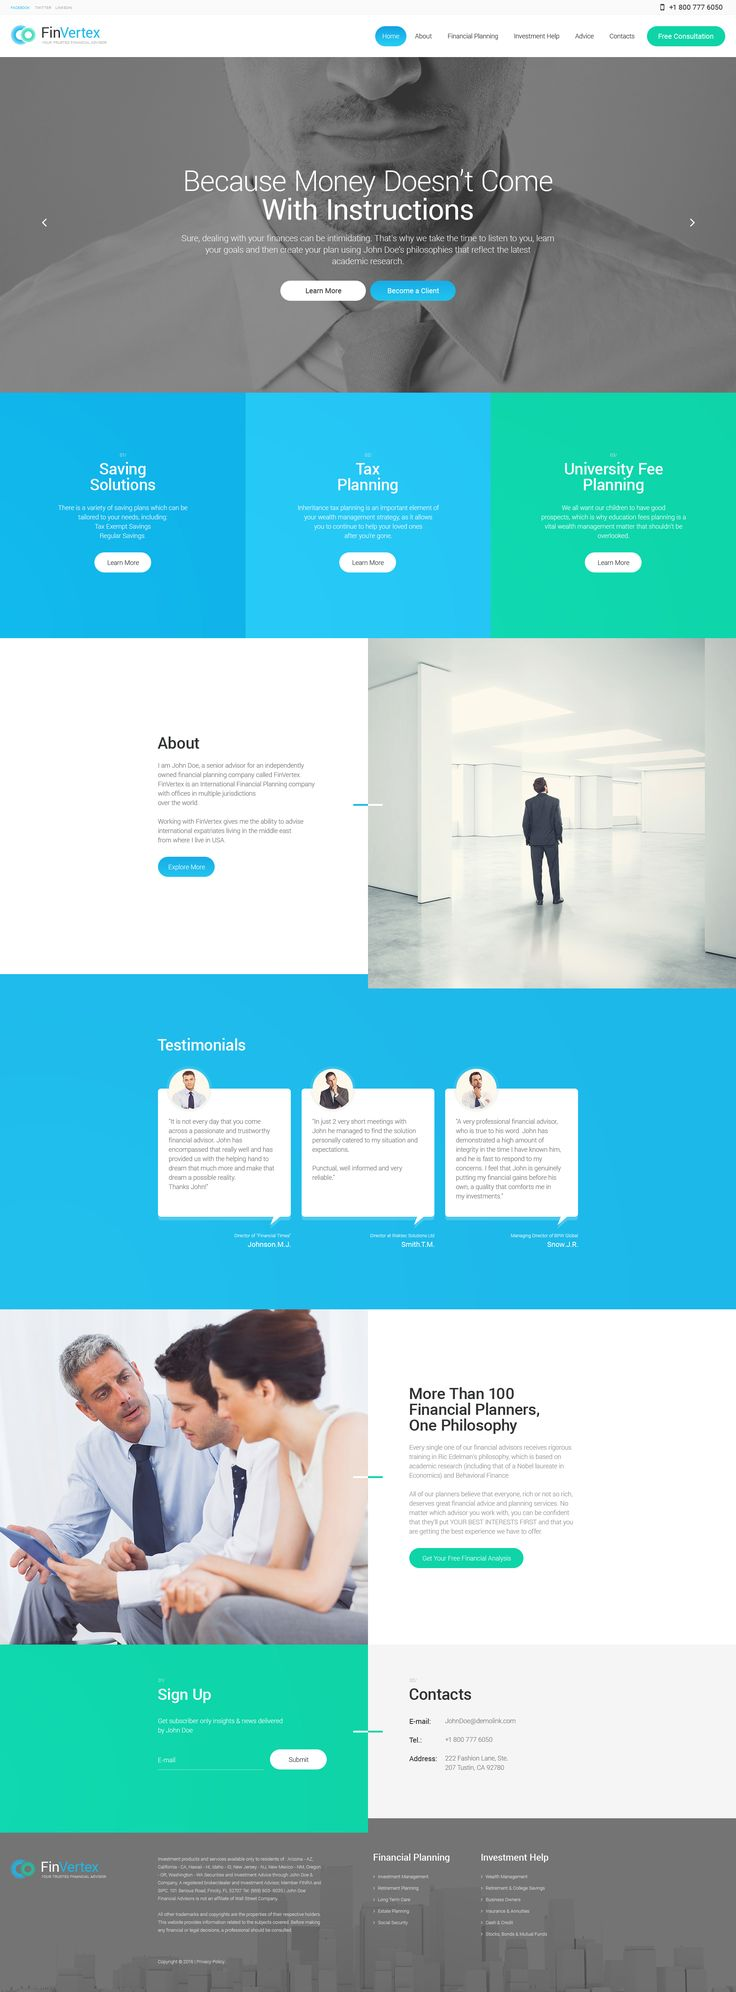 286 best images about WordPress Themes on Pinterest | Web hosting ...